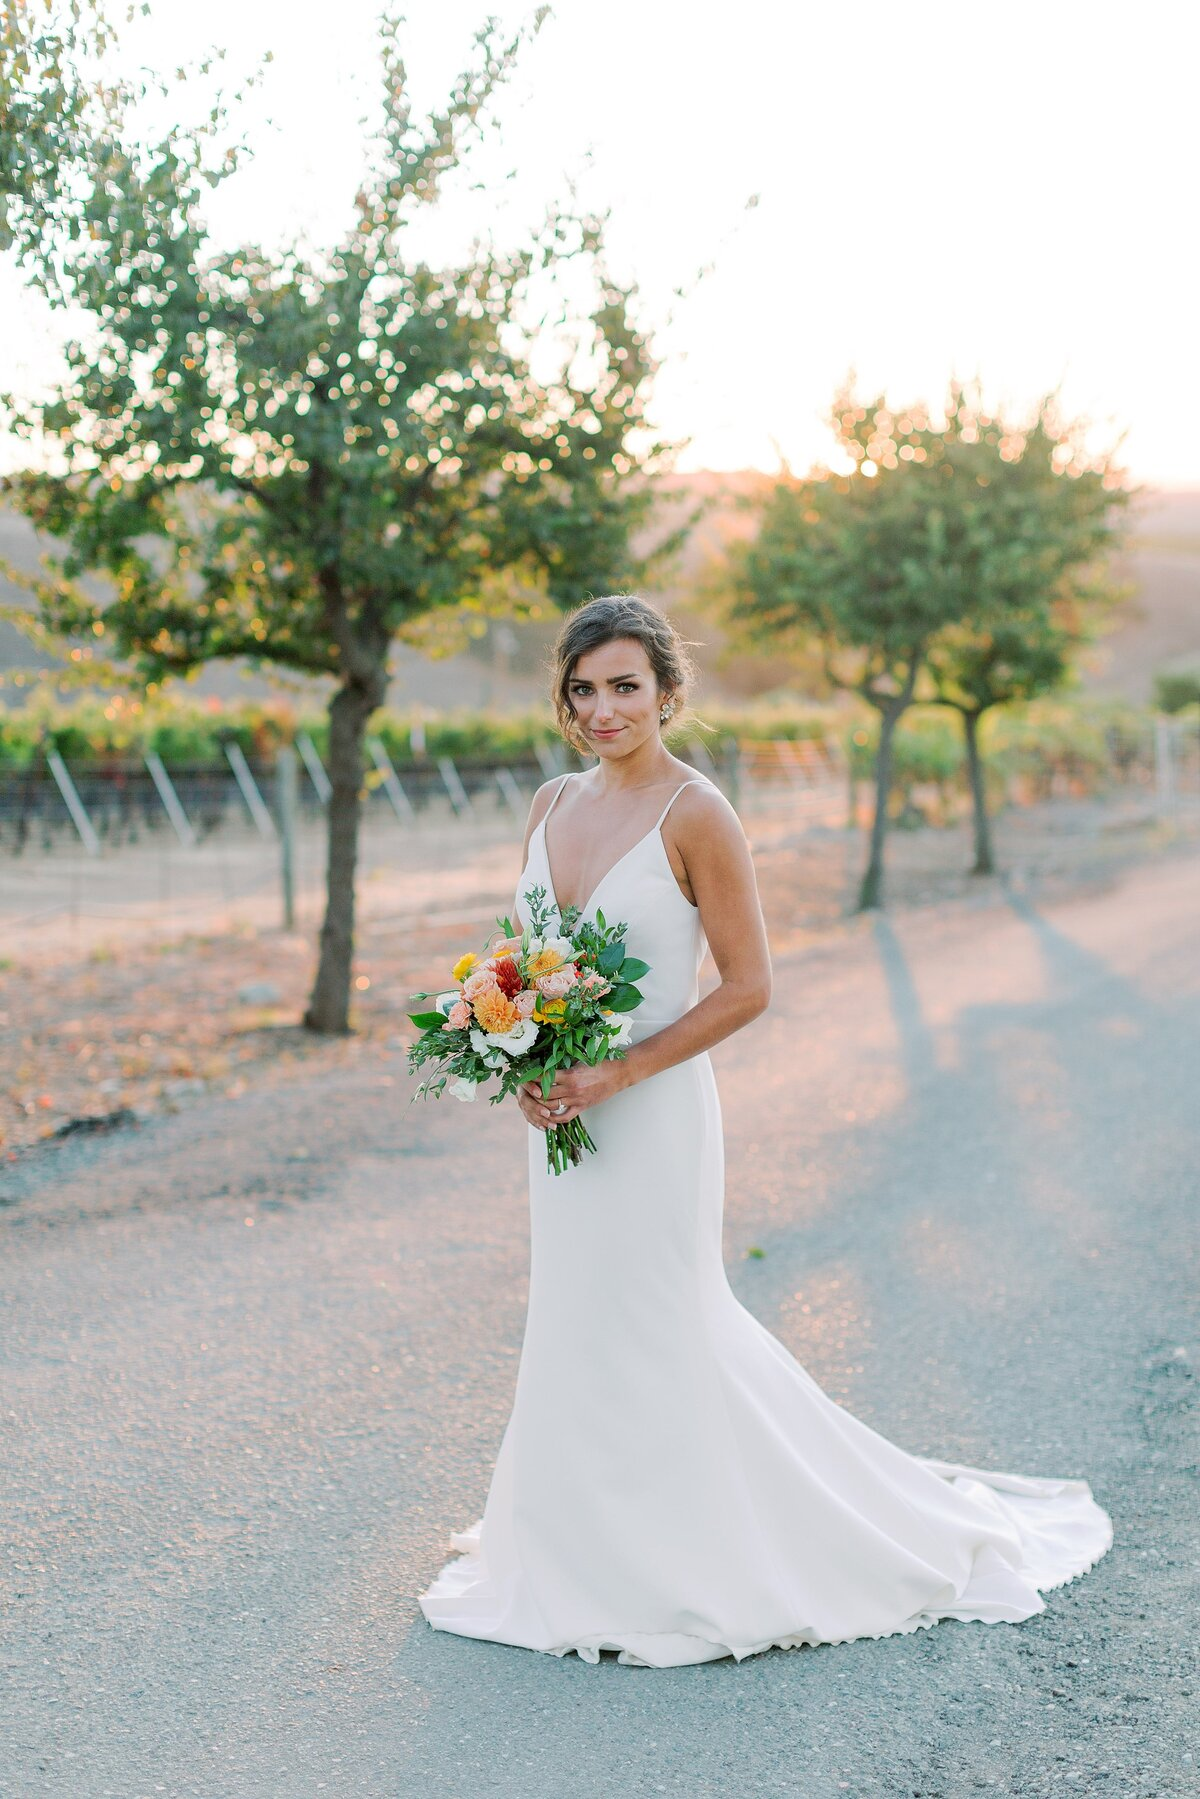 20191020 Modern Elegance Wedding Styled Shoot at Three Steves Winery Livermore_Bethany Picone Photography-197_WEB